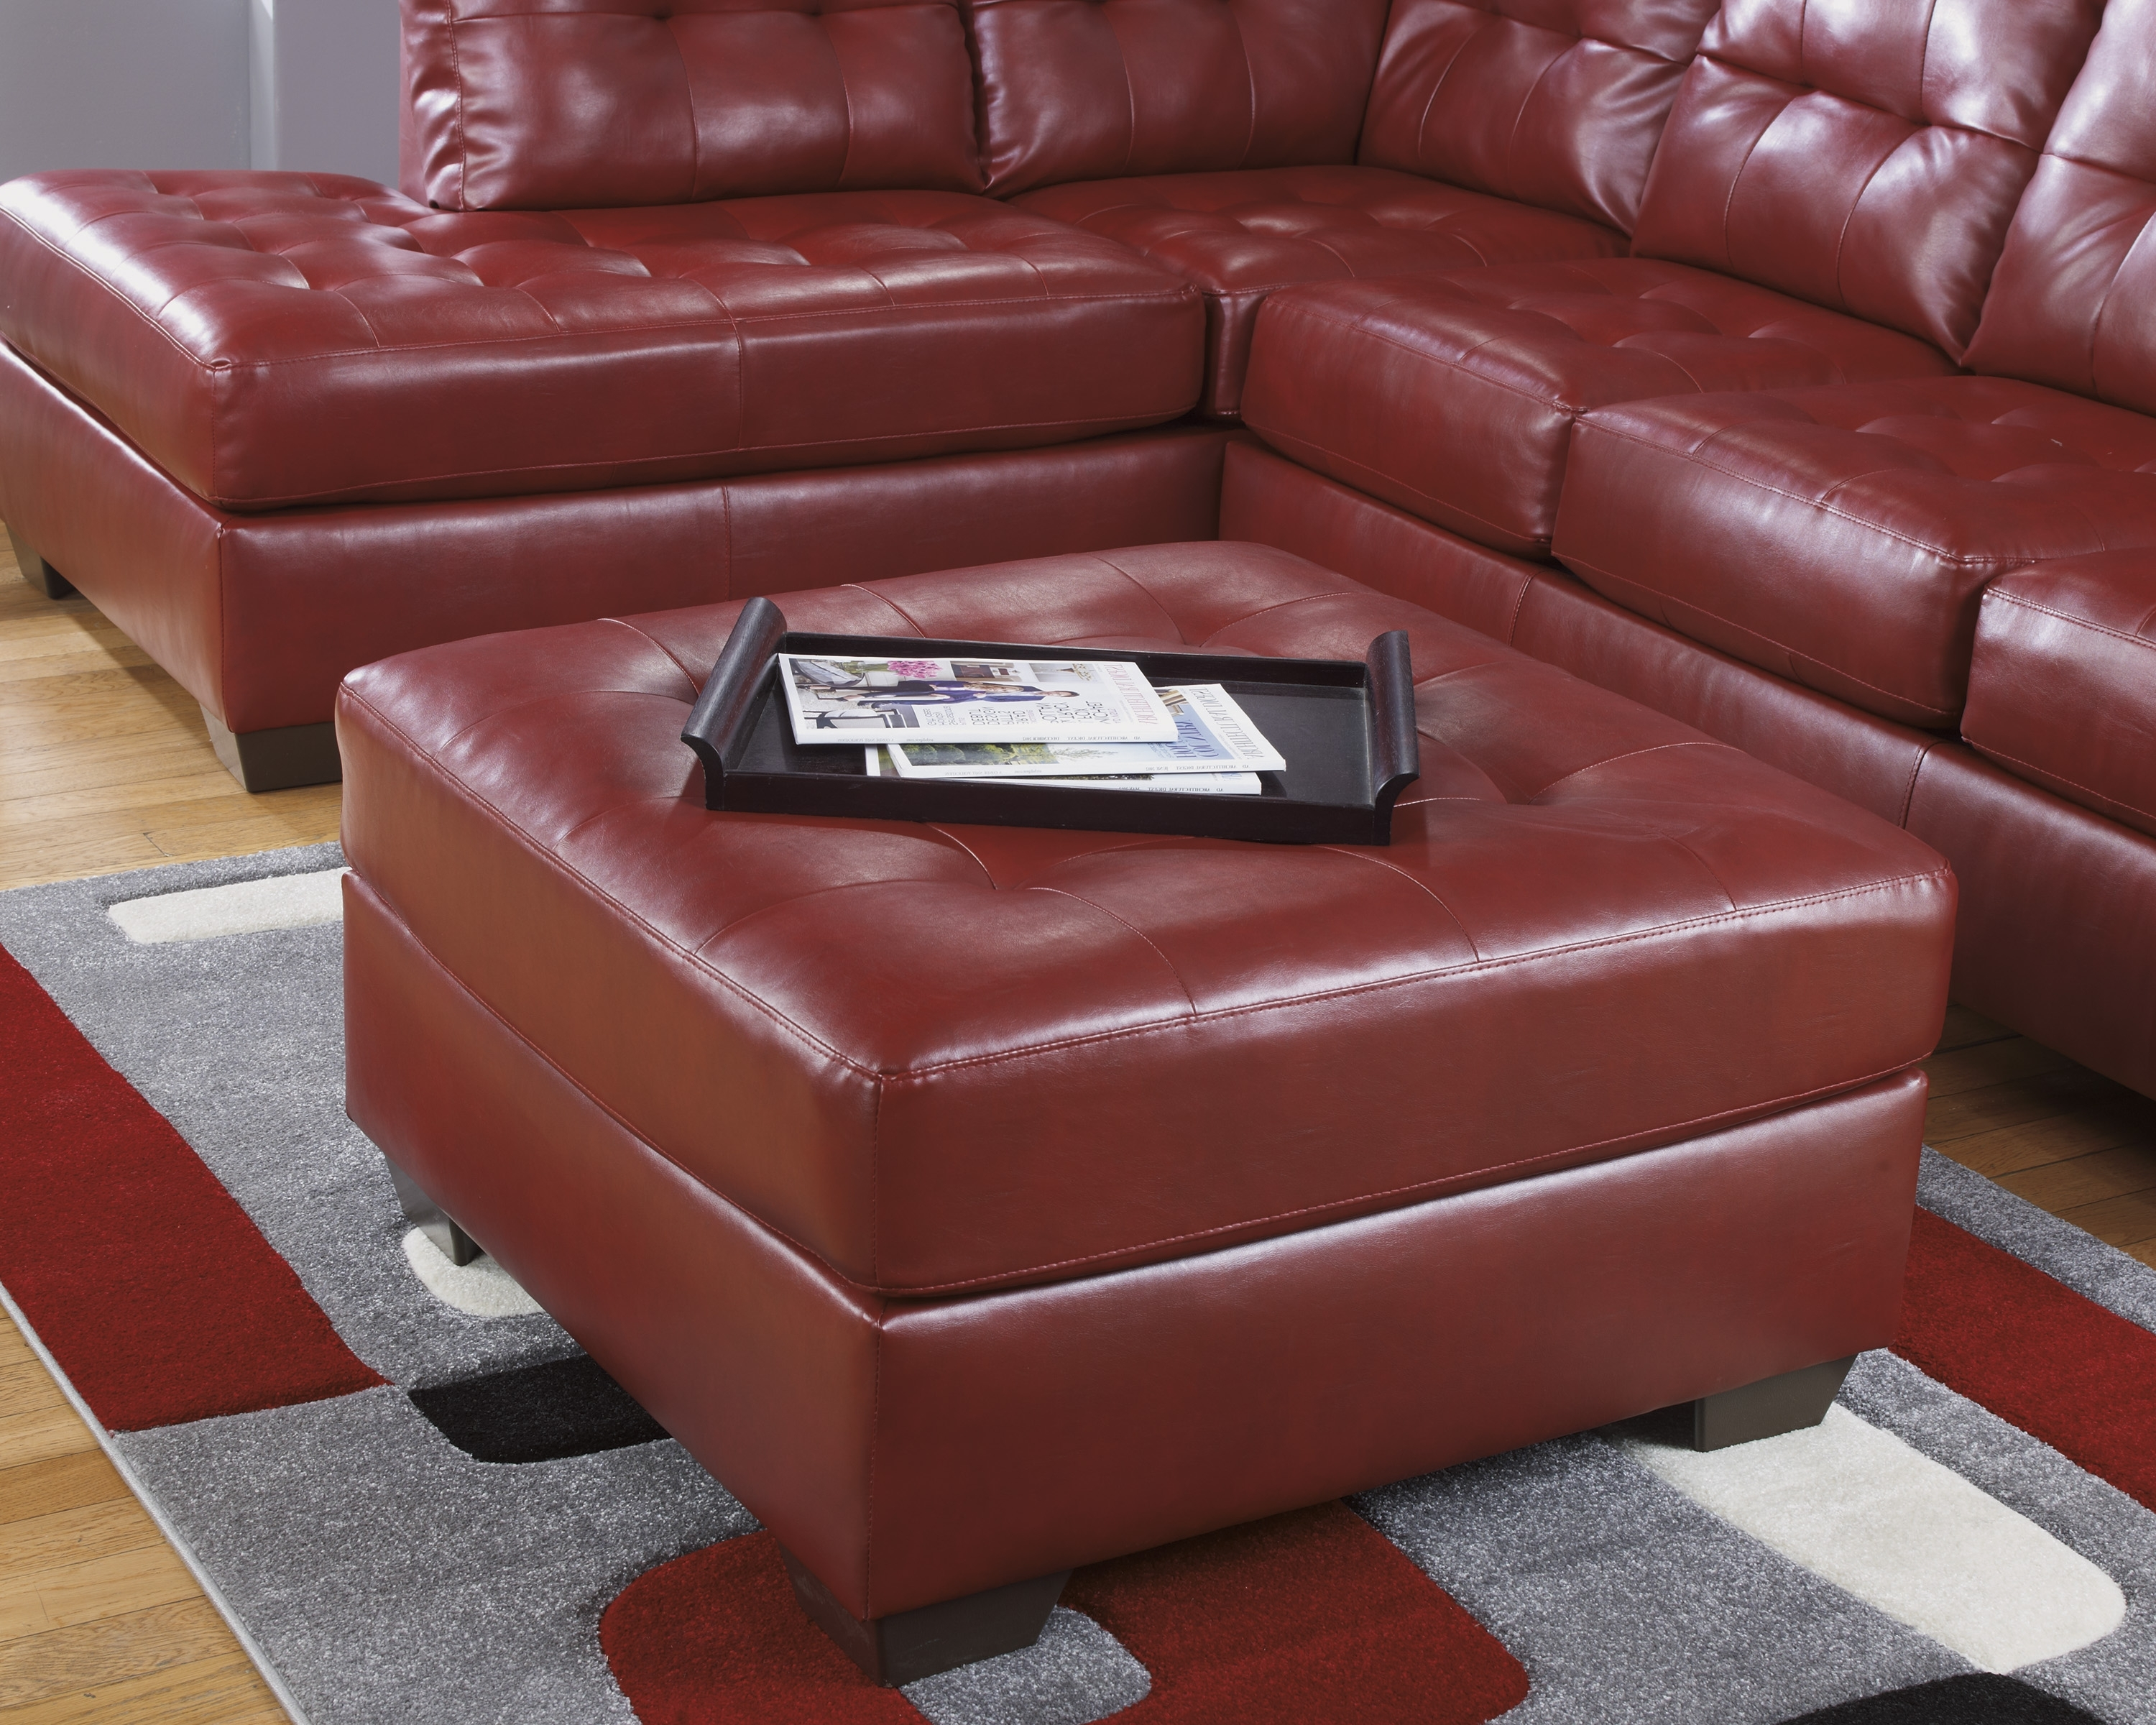 Ashley Furniture Leather Sectionals, Ashley Furniture Sofa Throughout Favorite Red Sectional Sofas With Ottoman (View 7 of 15)